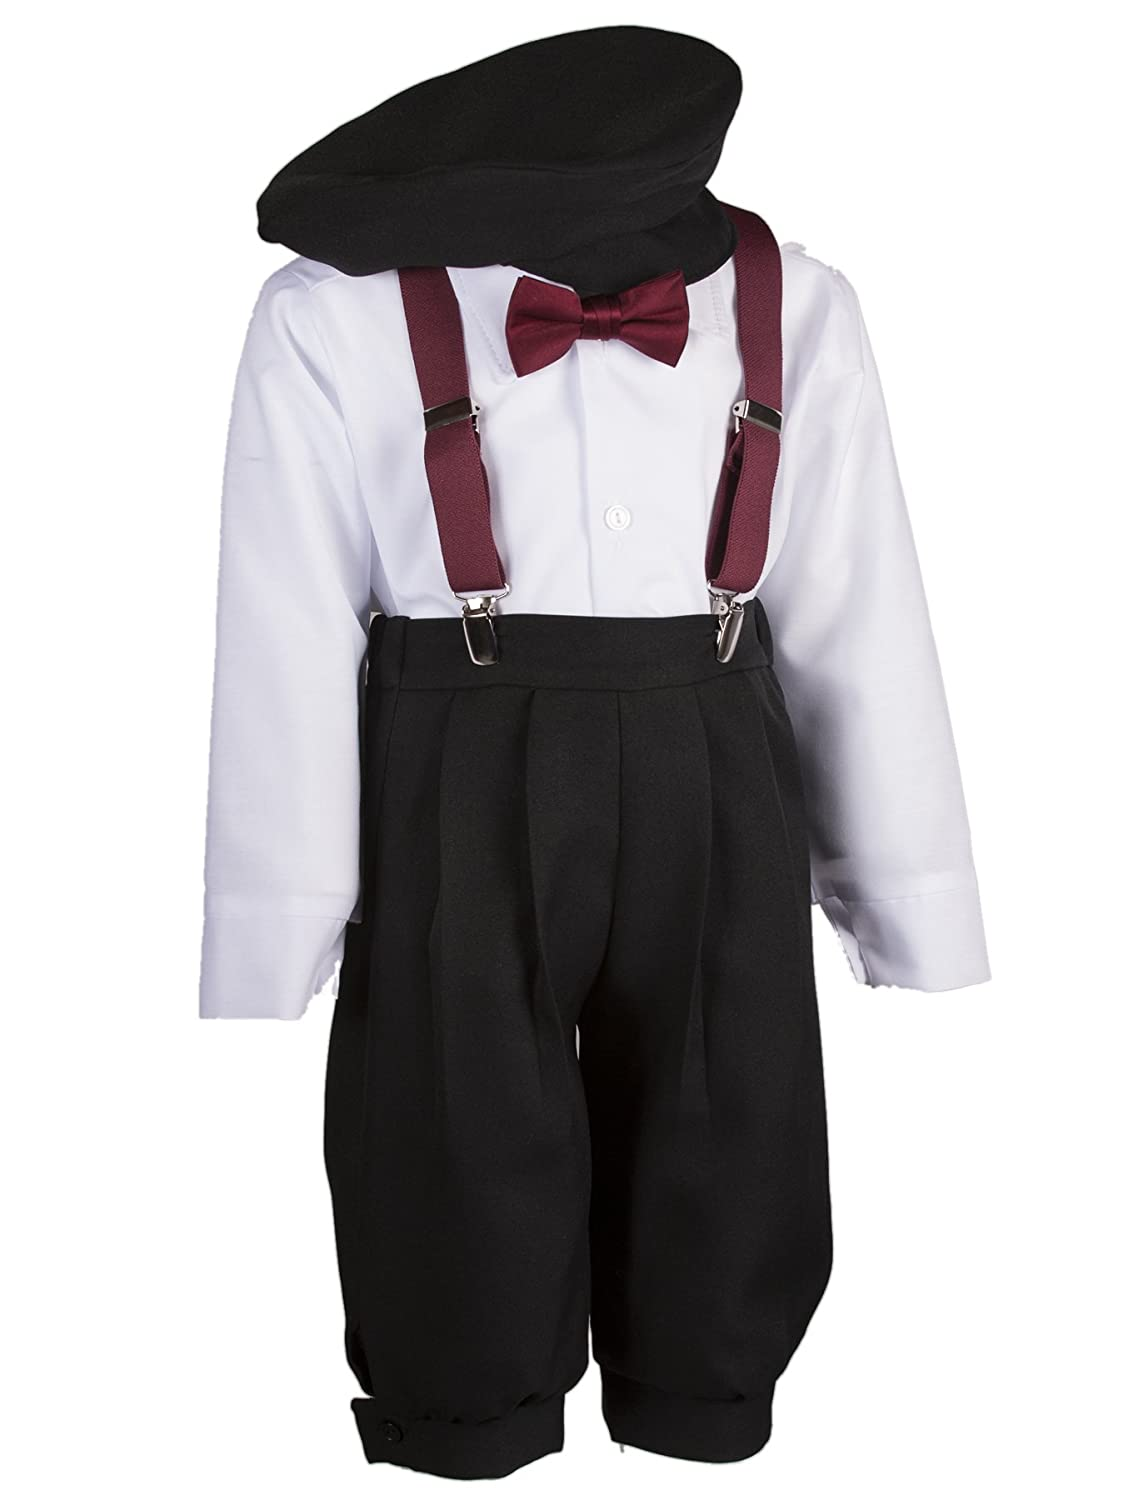 Tuxgear Boys Black Knickers Set Pageboy Cap Burgundy Suspenders & Bow Tie